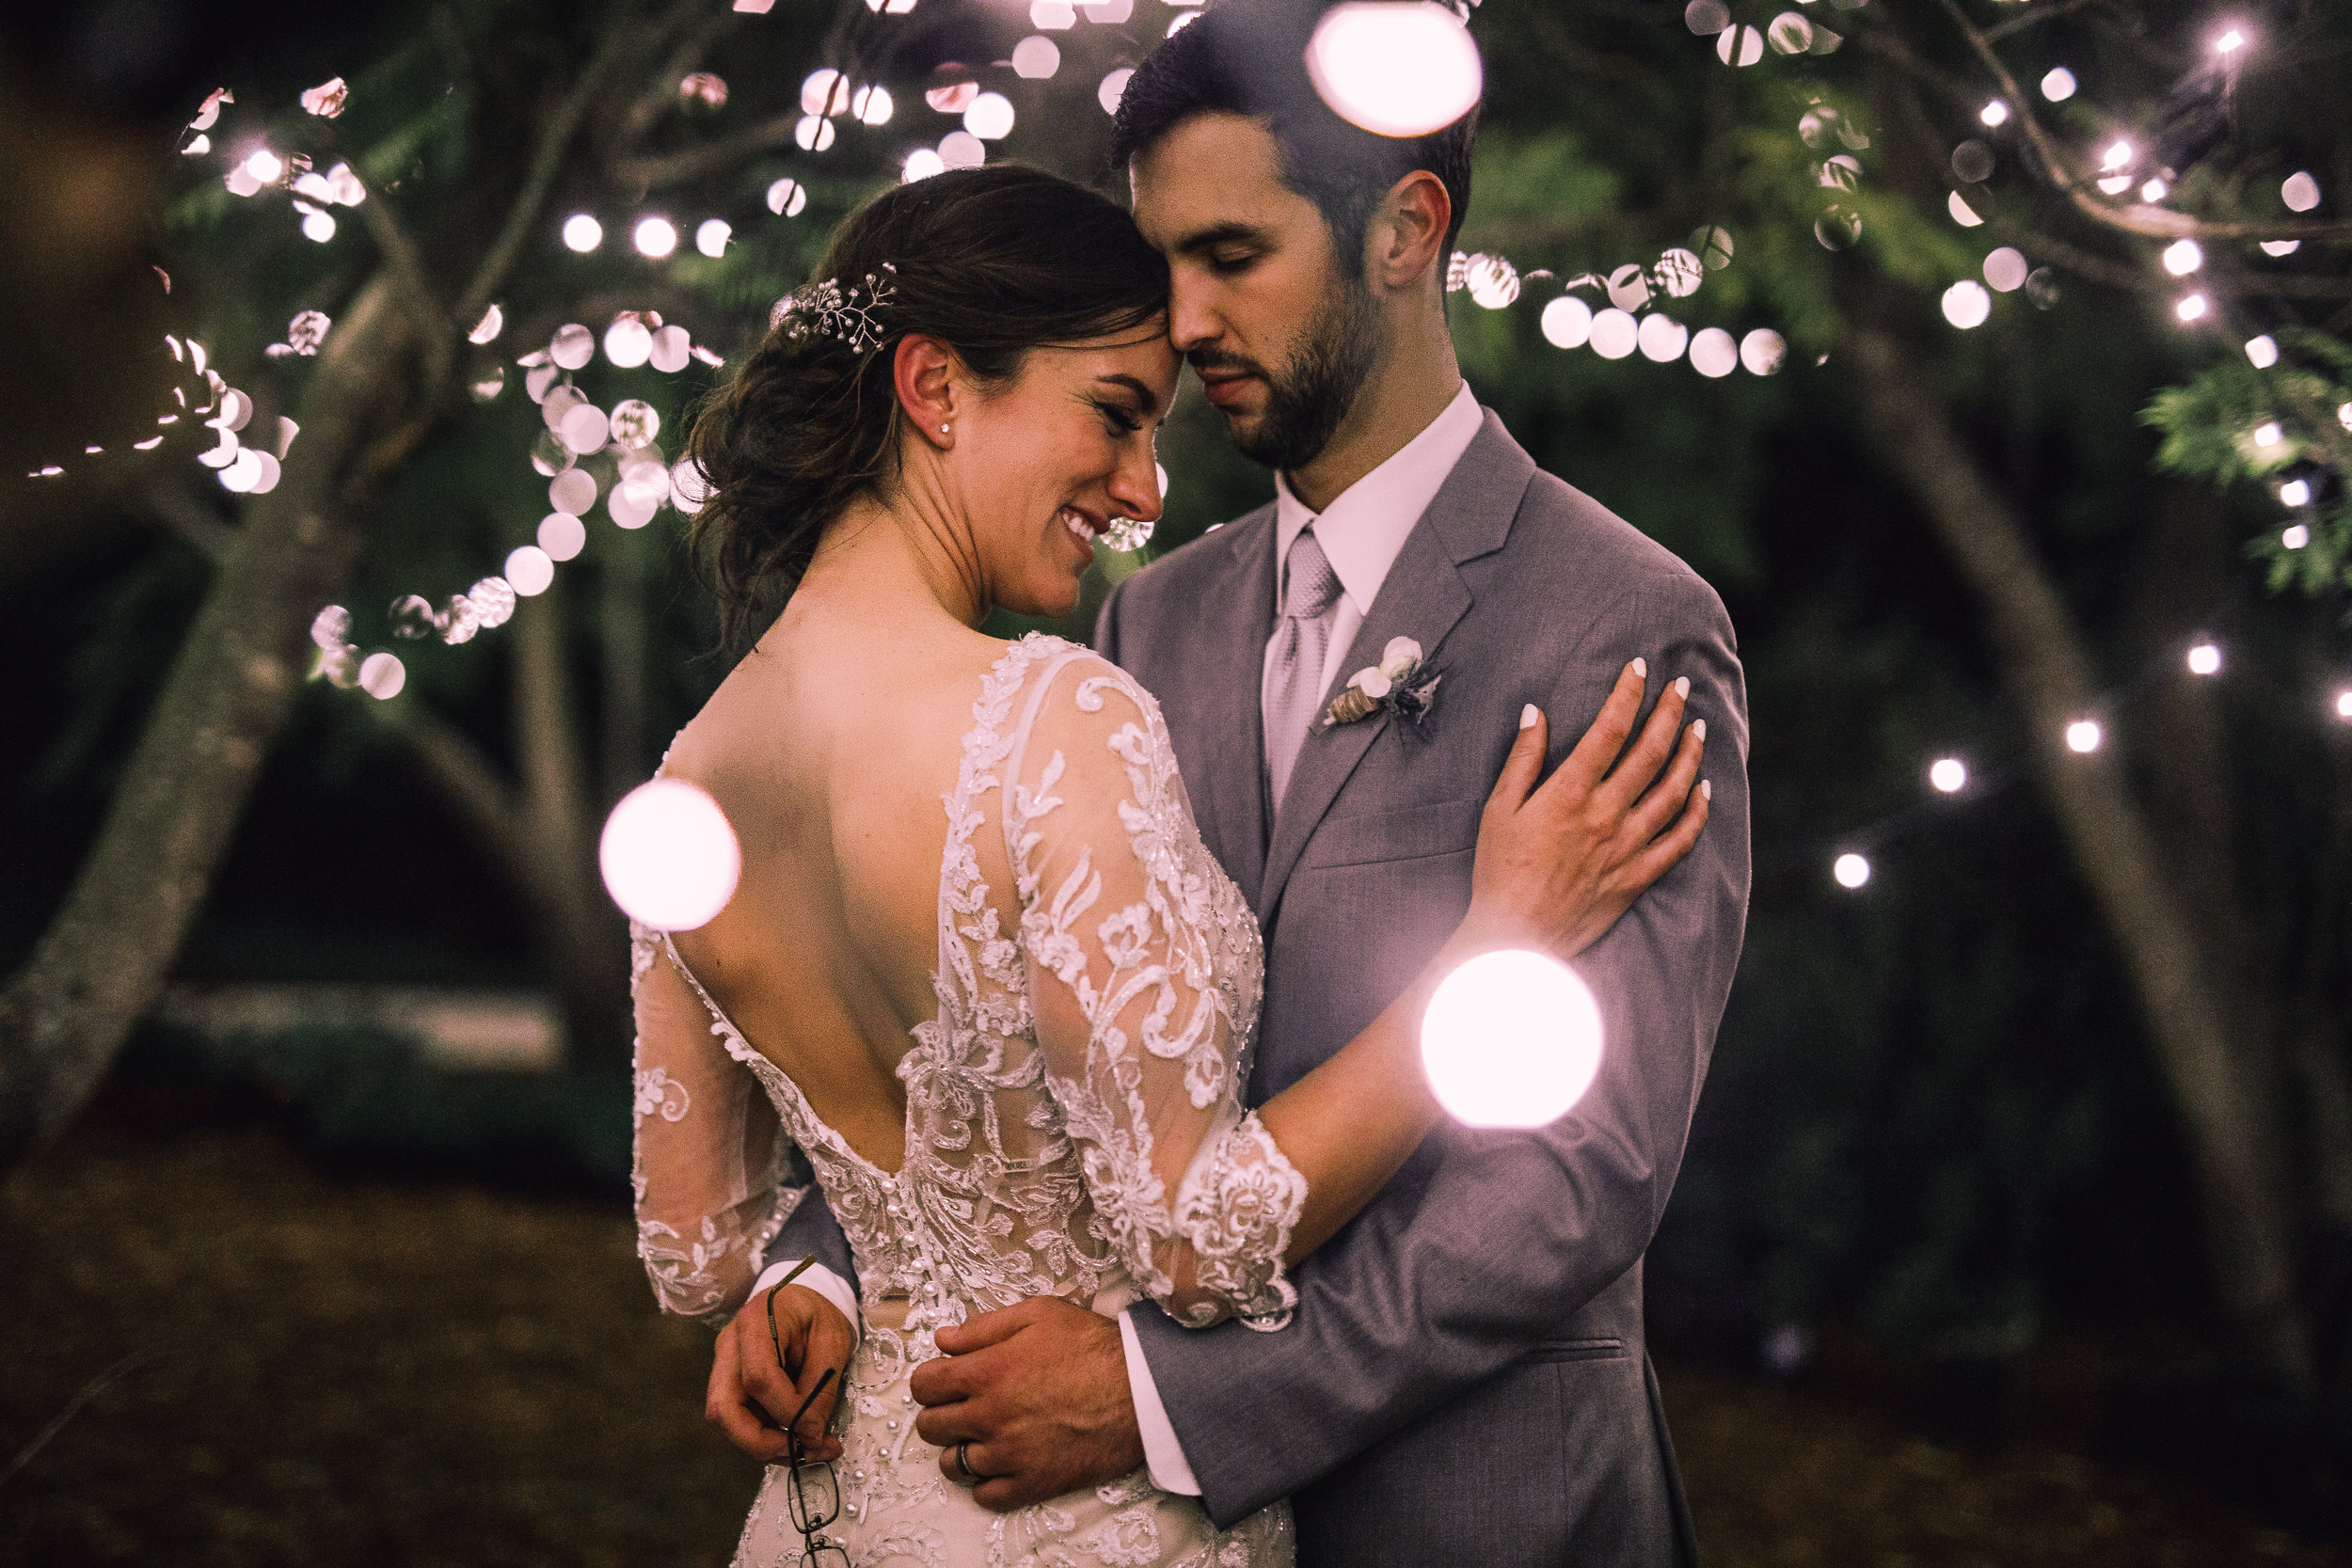 san diego wedding   photographer | groom dancing with bride with bride's arm on groom's arm under   lights and branches